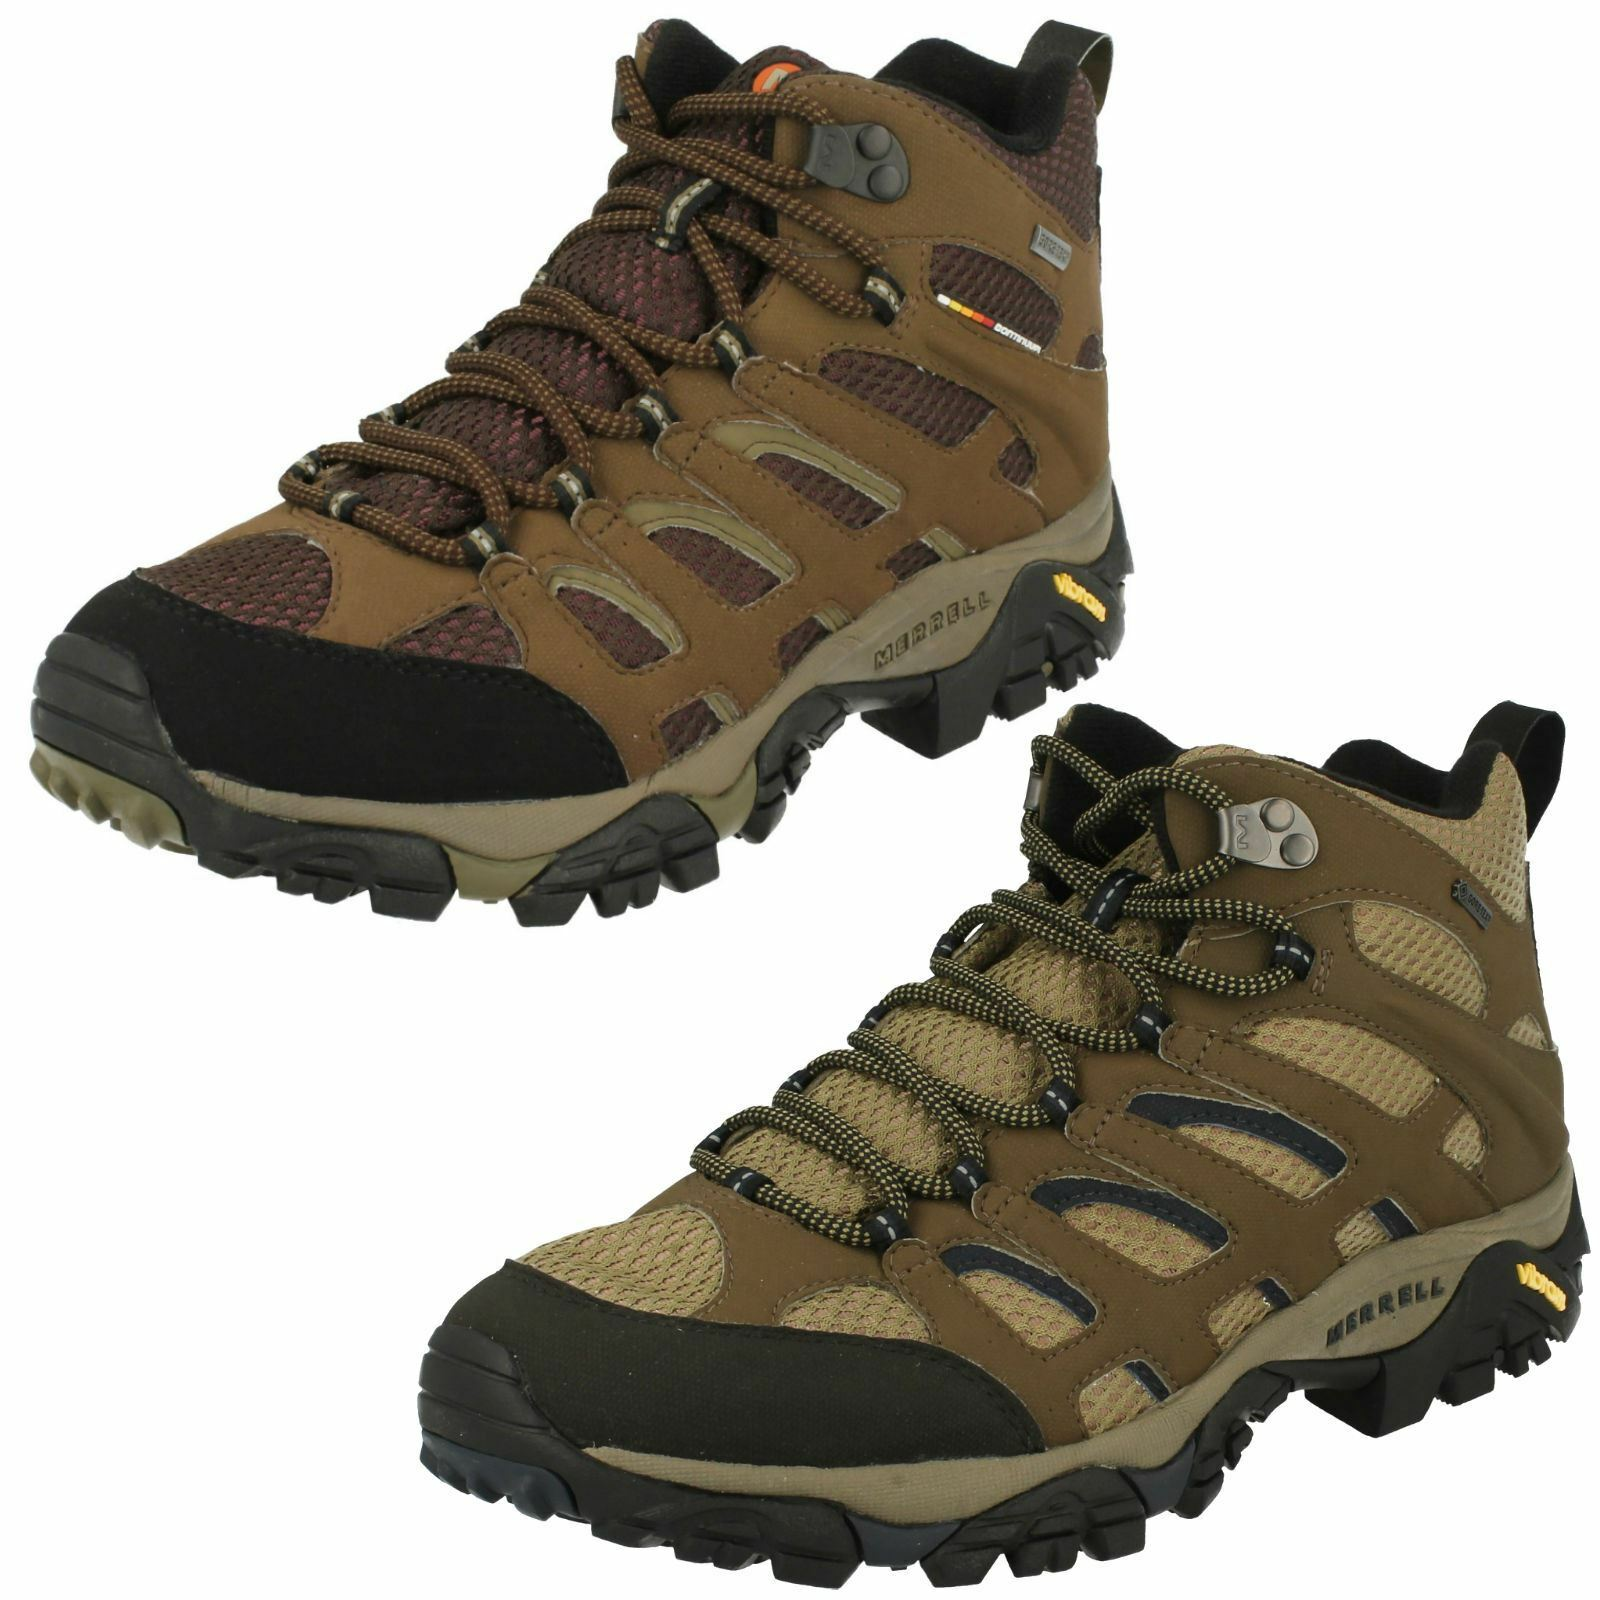 Mens Merrell Lace Up Walking Stiefel Moab Mid